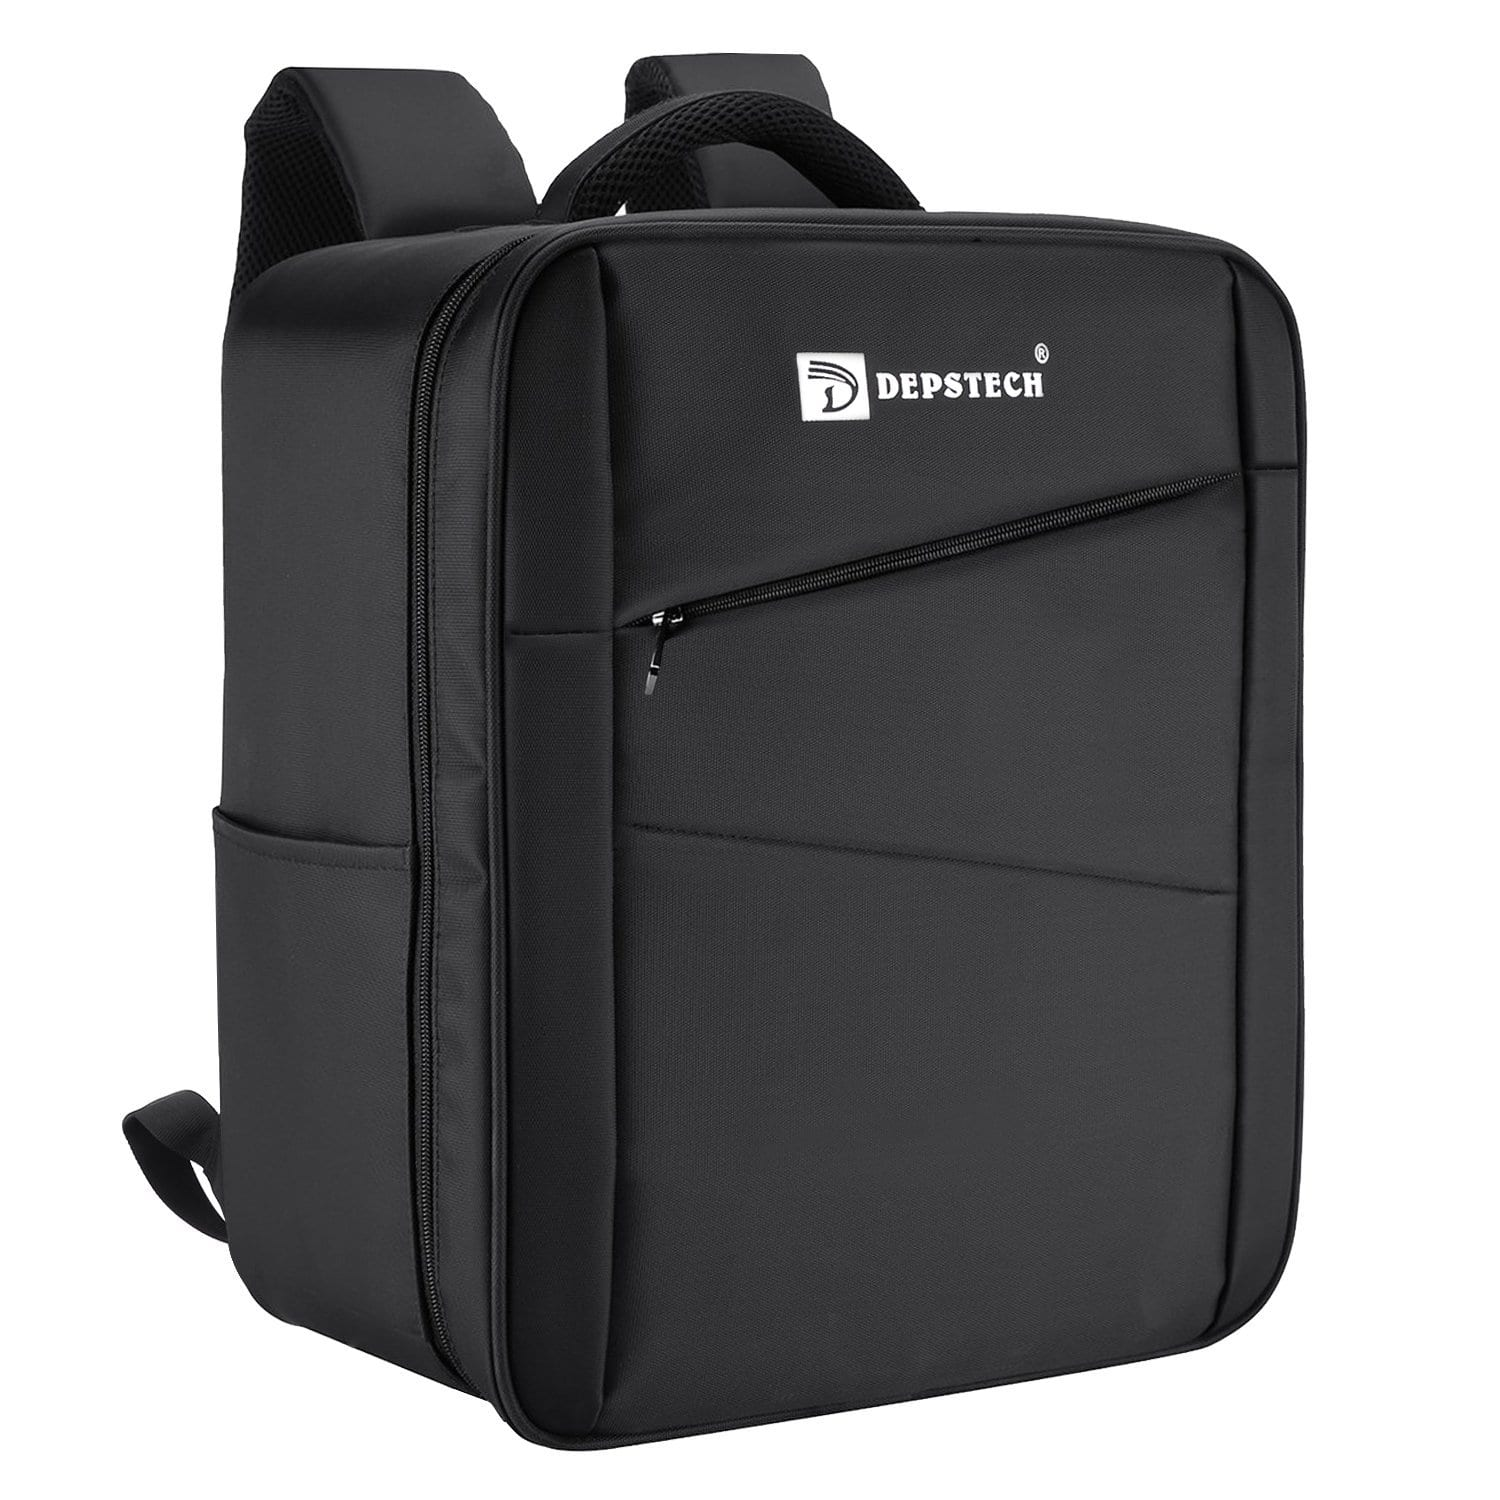 Waterproof Carrying Bag Traveling Backpack Case for DJI Phantom 3 Professional (Black/Gray Blue) for $35.49 AC+FS /w Prime @ Amazon